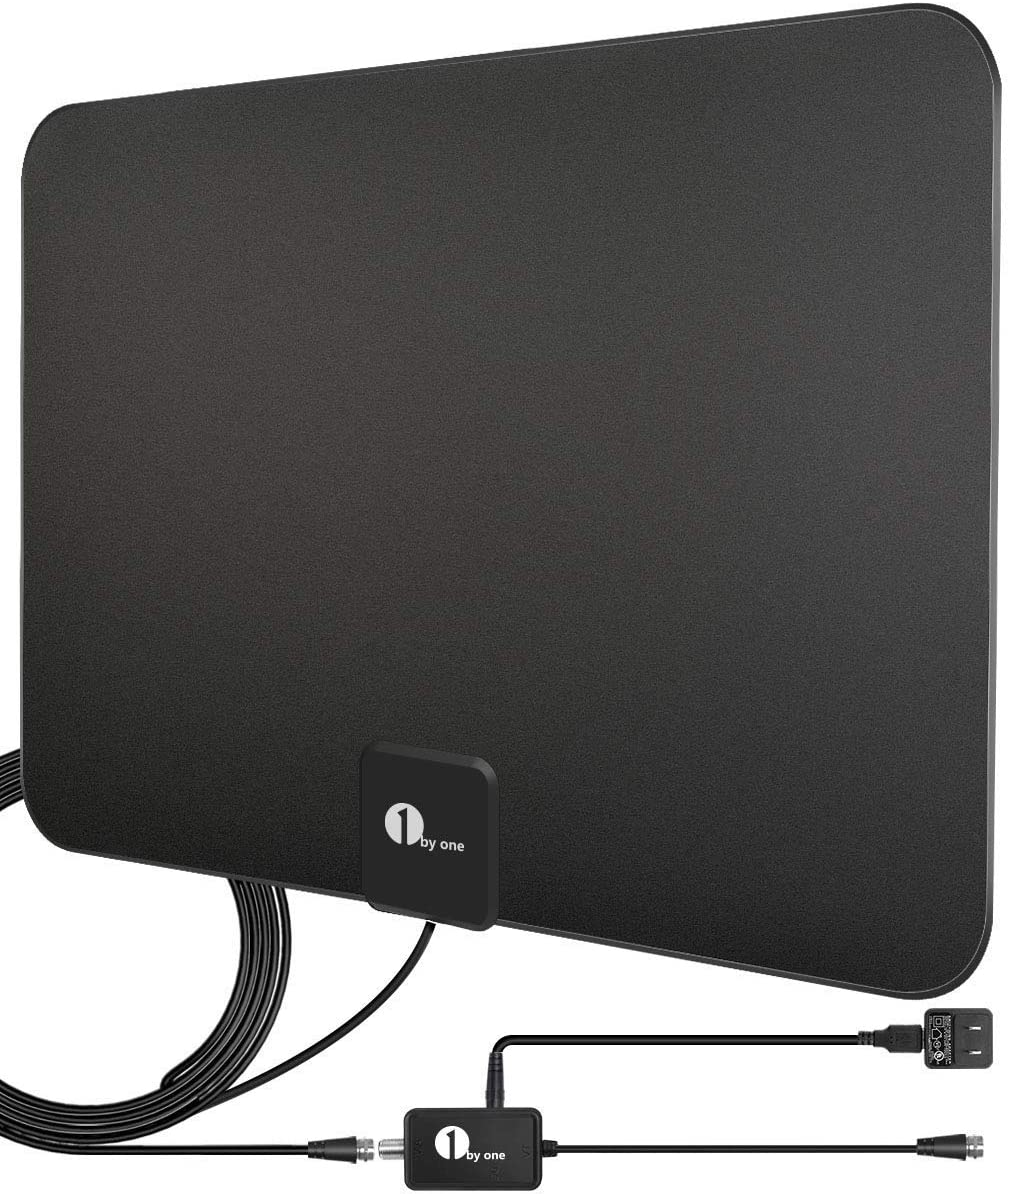 1byone Amplified Black HD Digital TV Antenna, 200-Mile Range